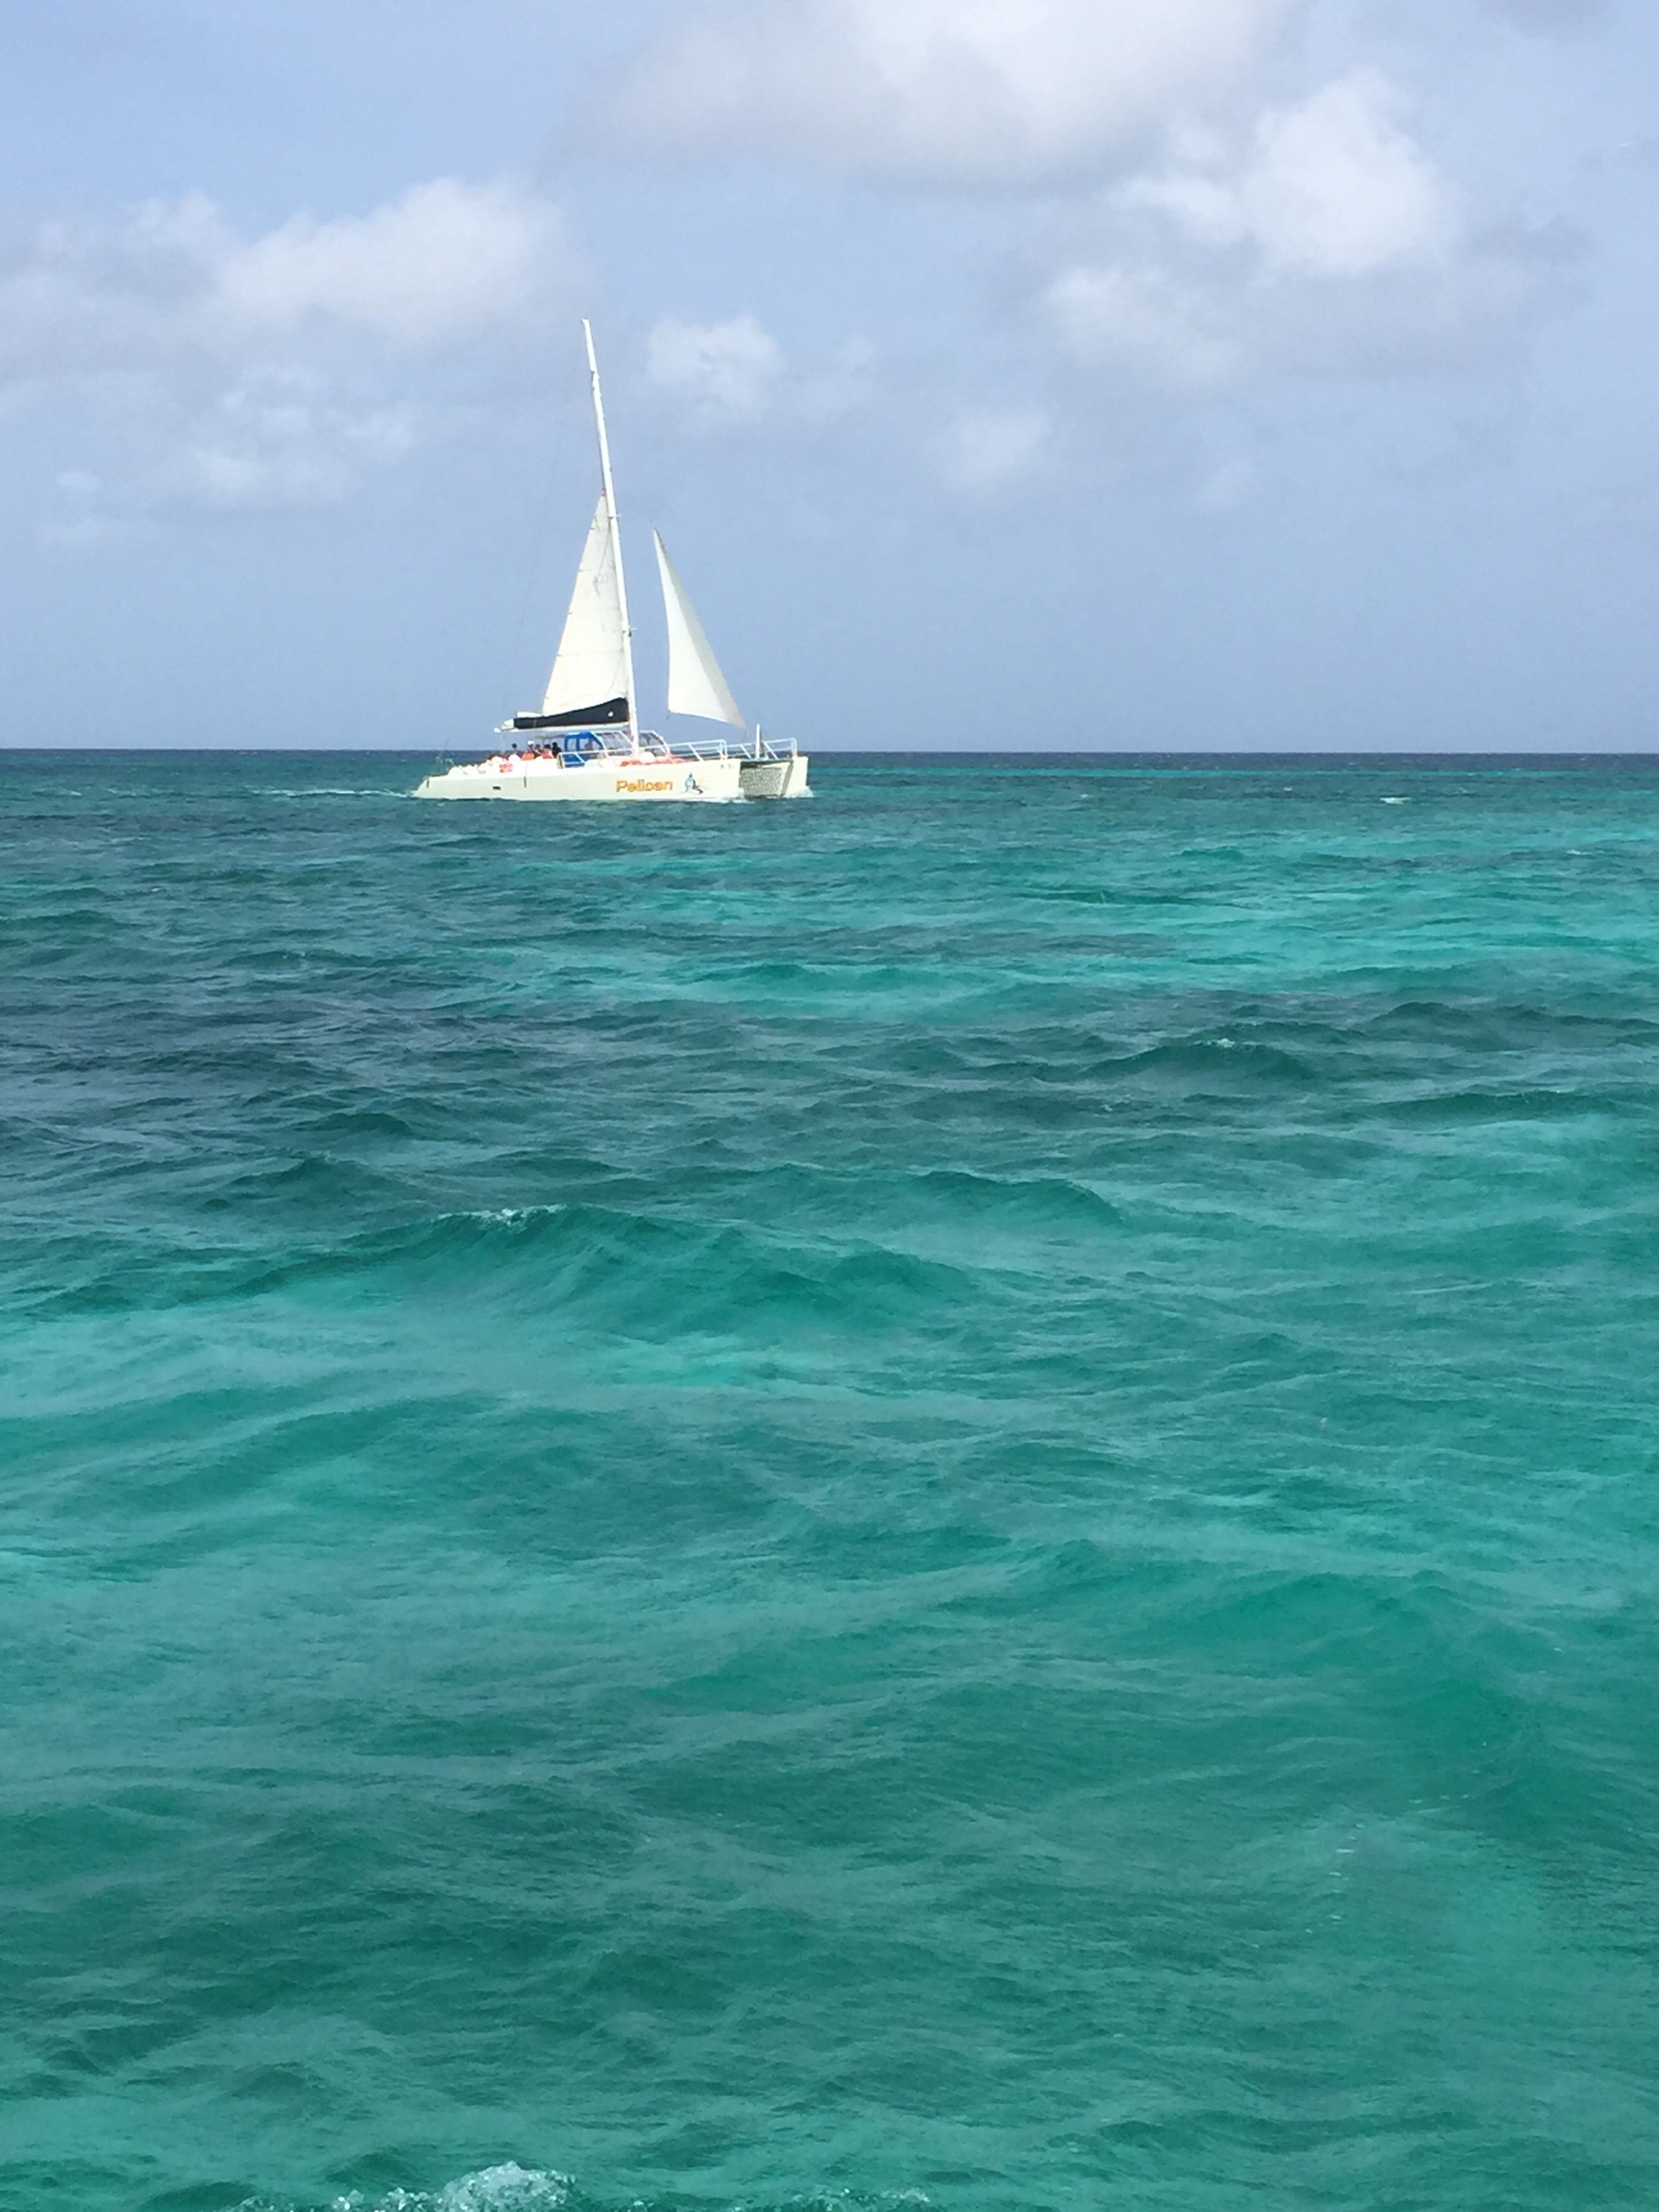 Always always ride a sailboat when you are near the ocean!